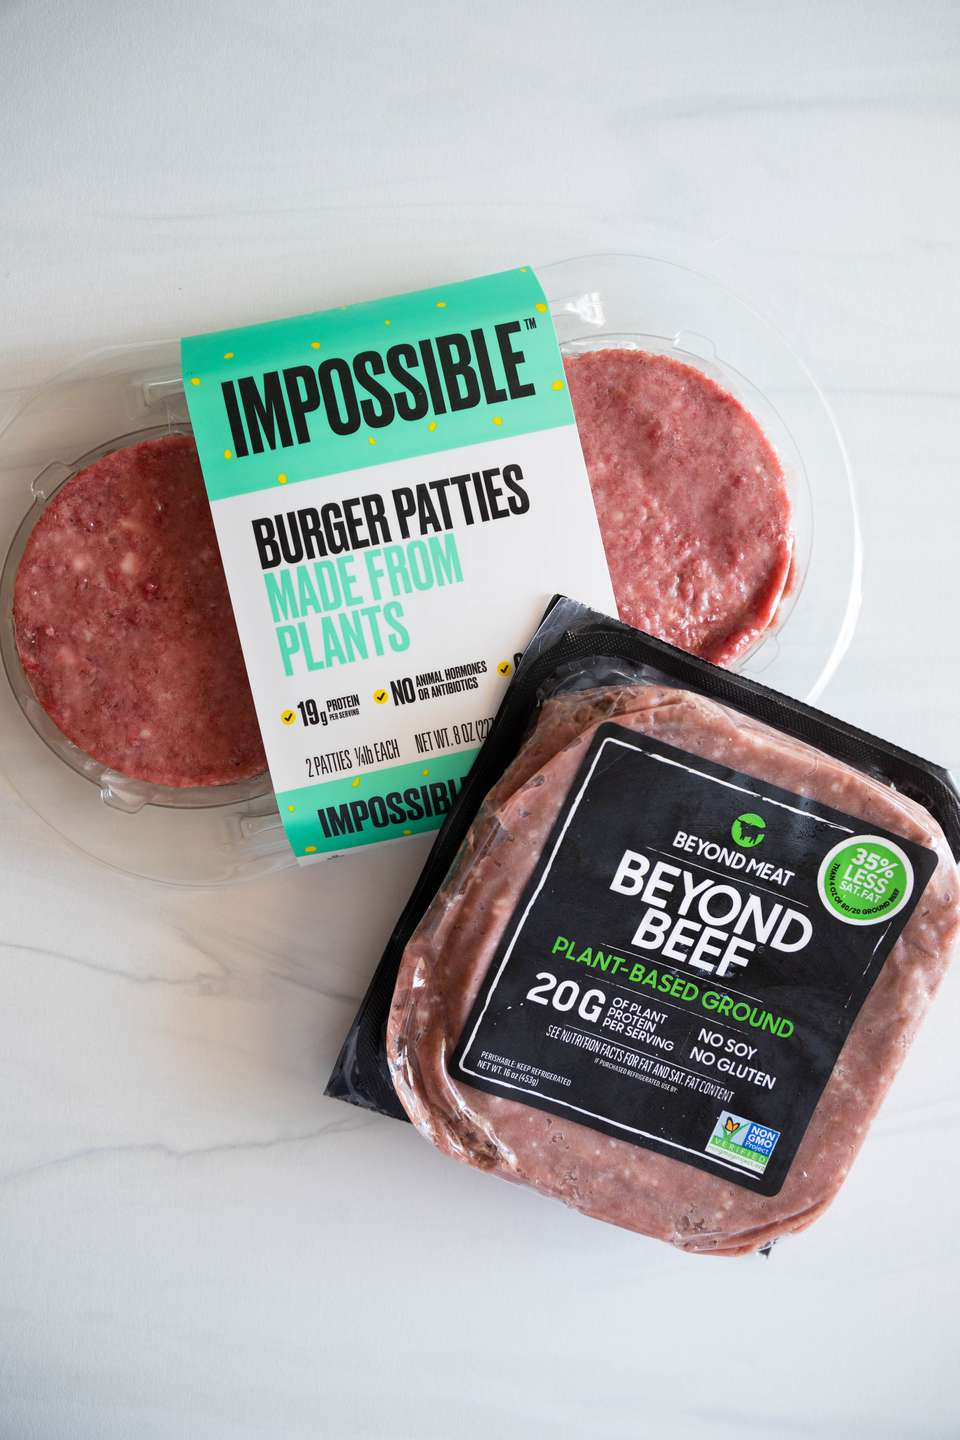 Impossible burger patties and beyond beef